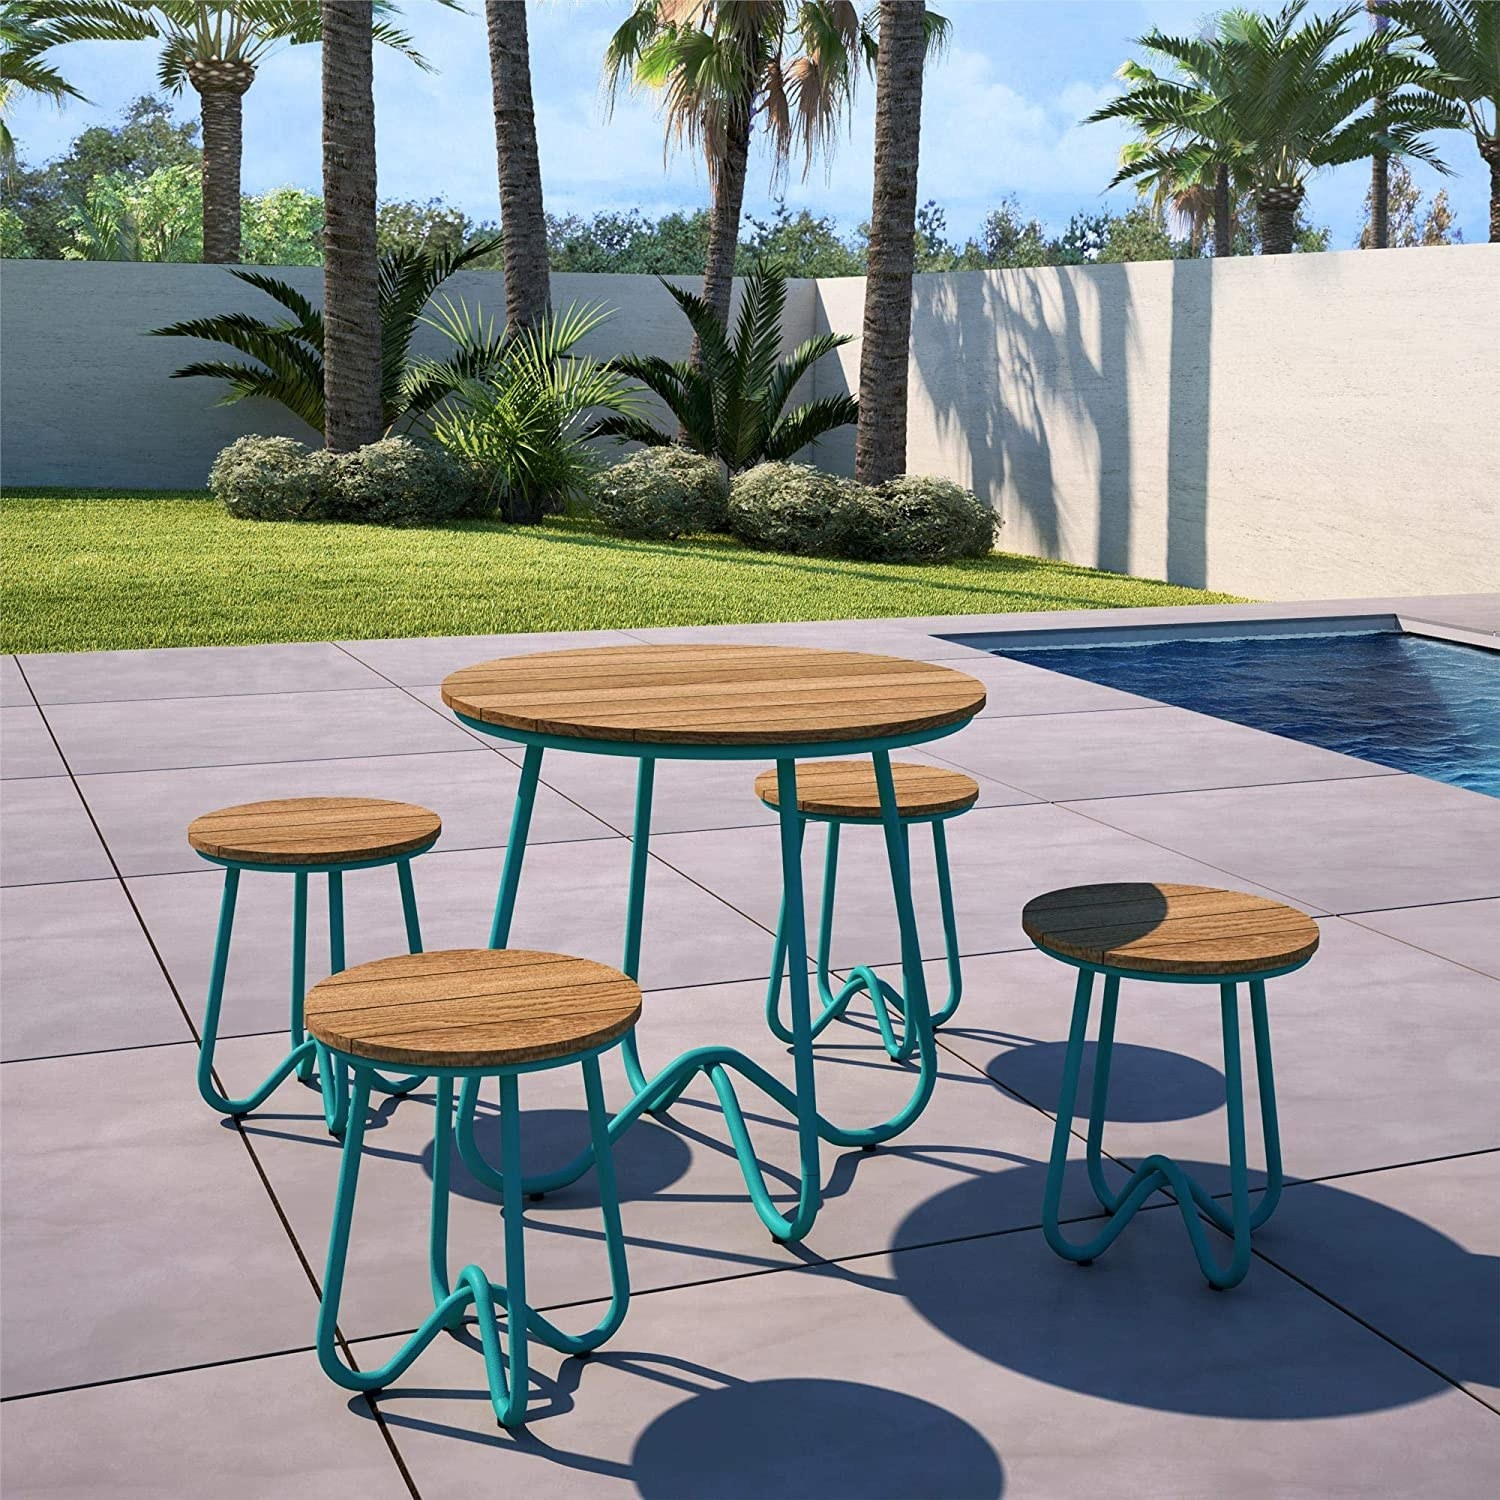 a circular wooden table surrounded by four stools, all have turquoise blue, curvy metal legs attached